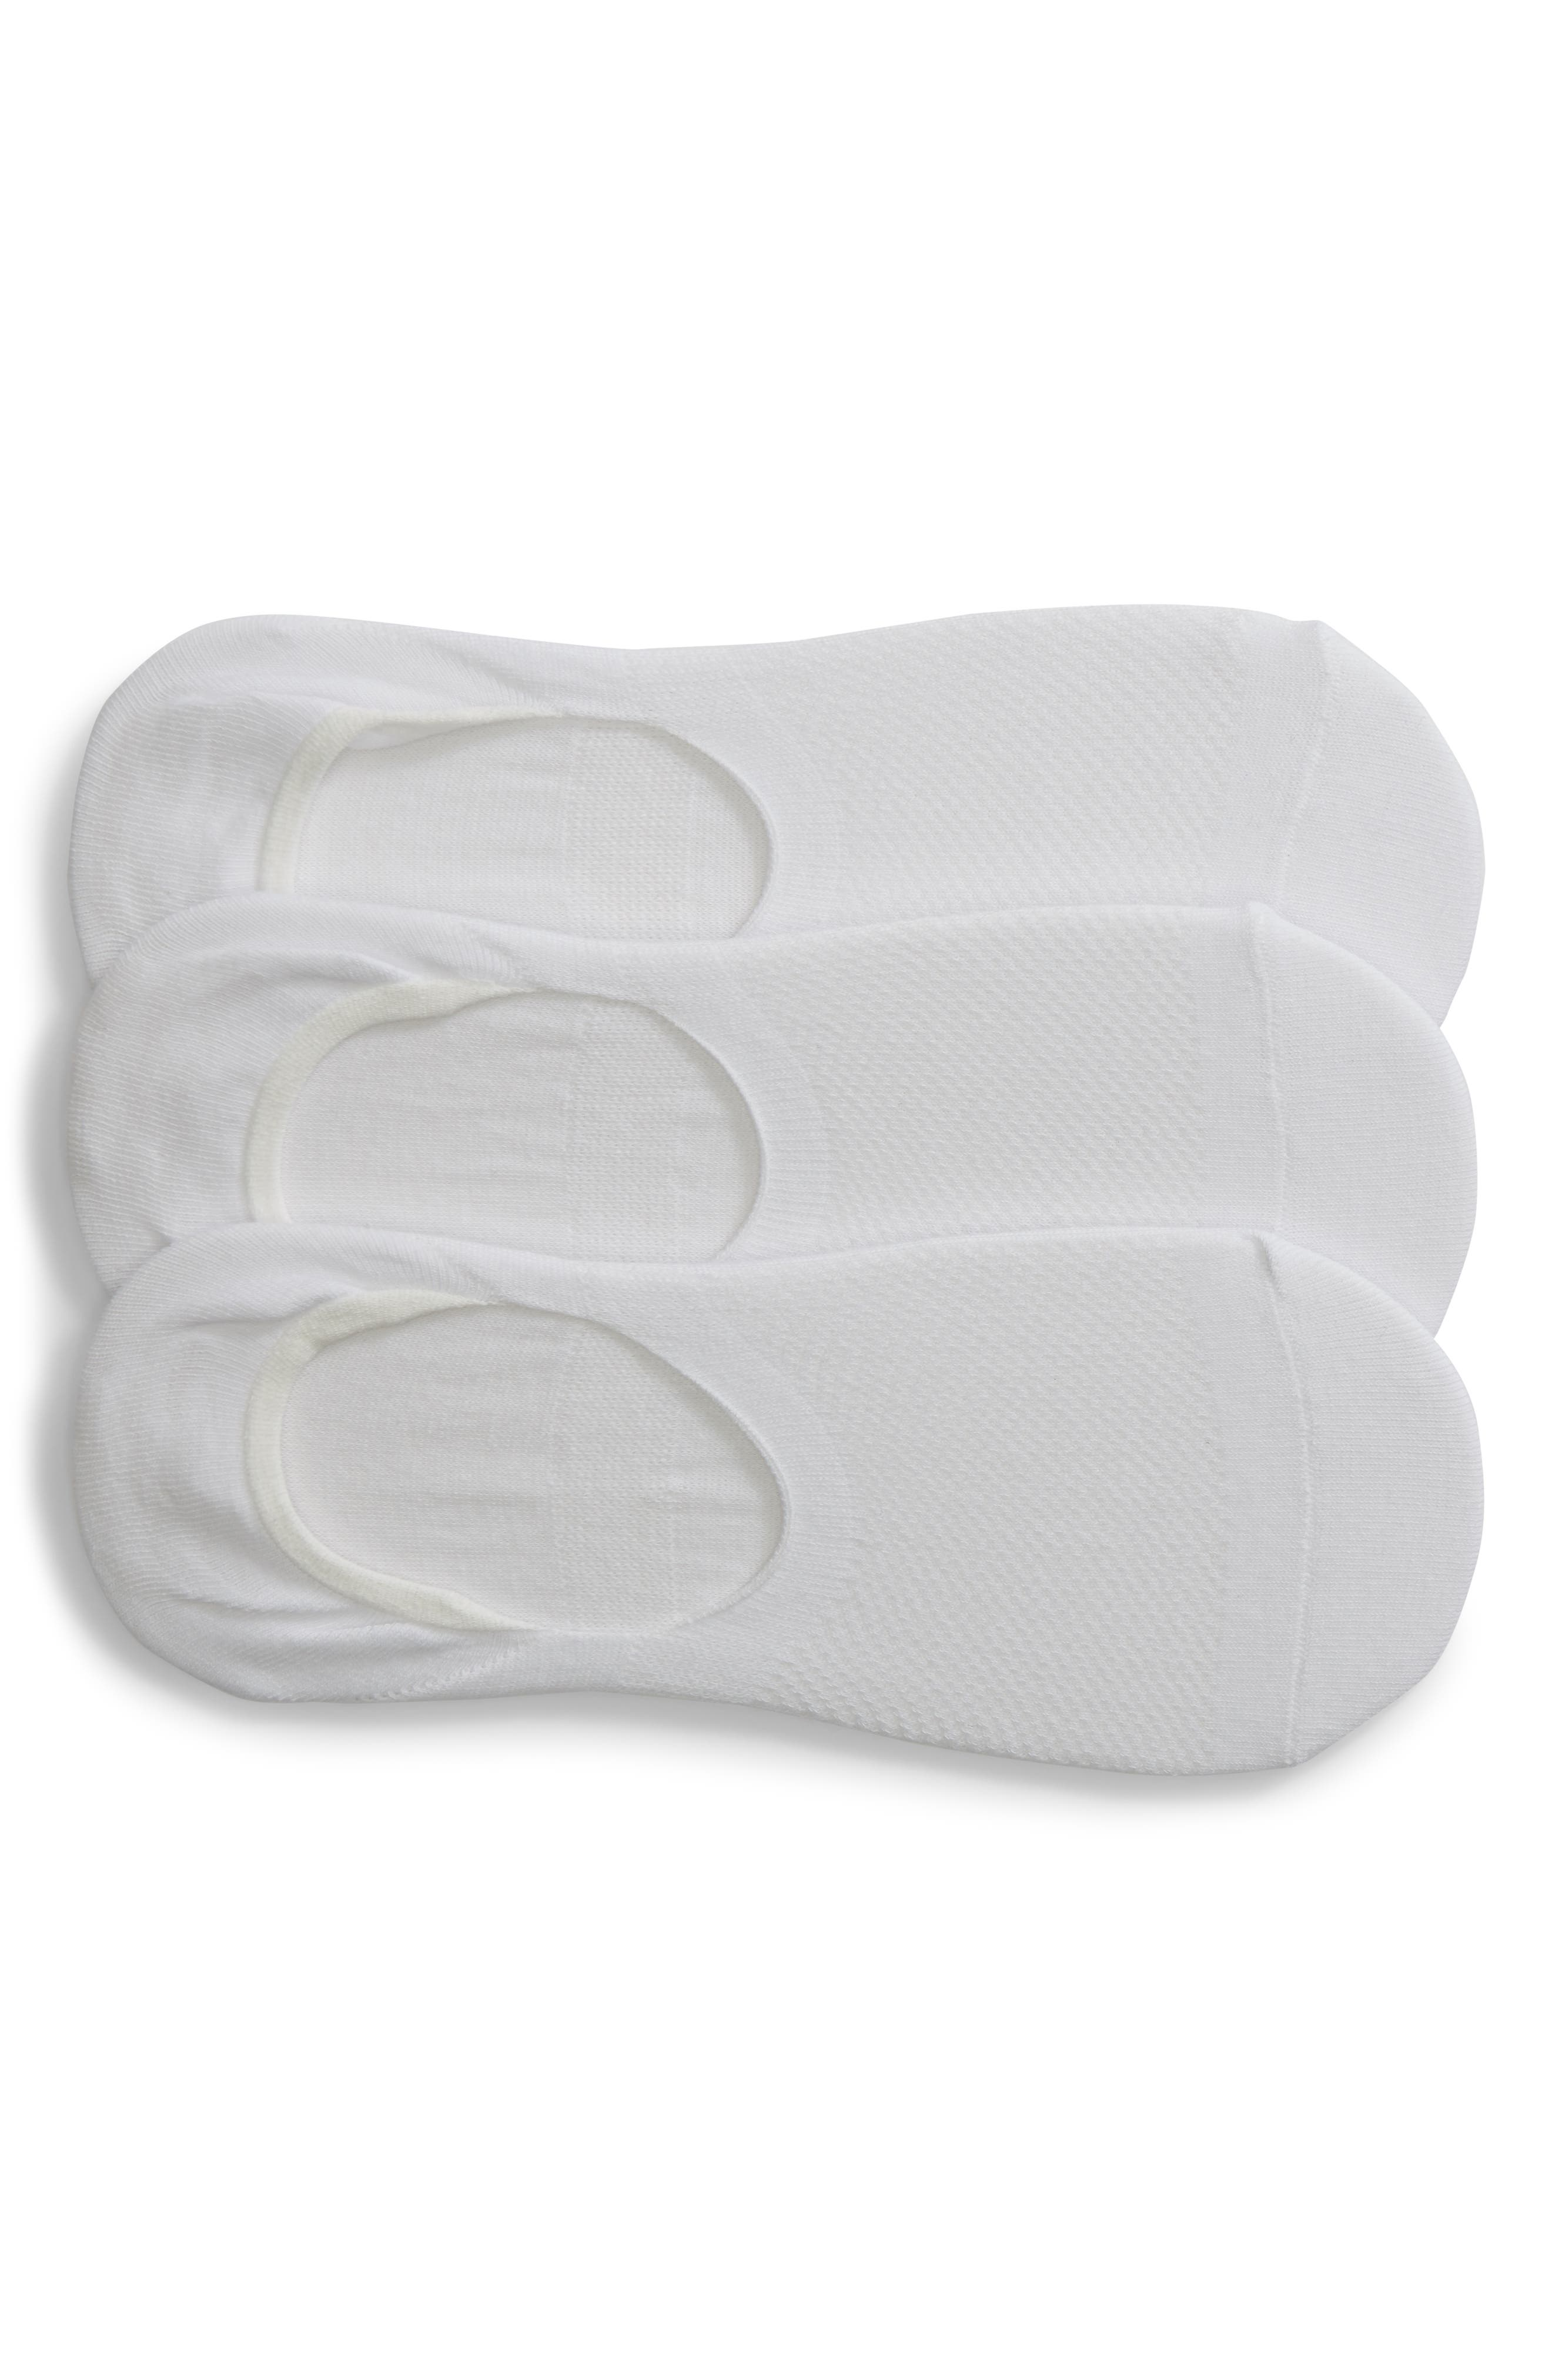 3-Pack Liner Socks,                             Alternate thumbnail 2, color,                             WHITE